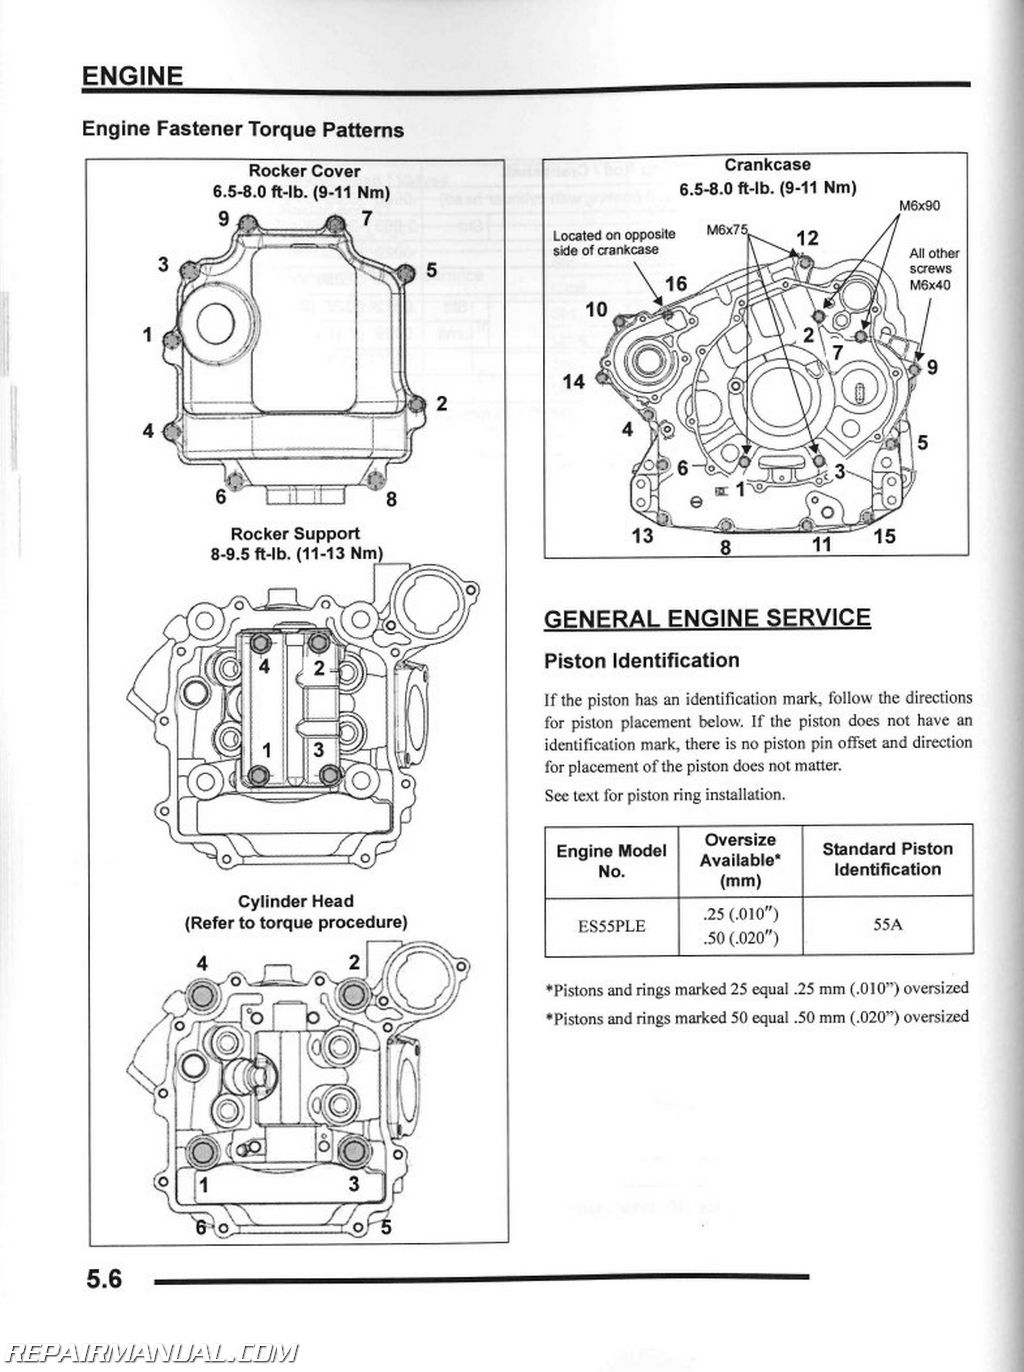 1100 Ford Tractor Wiring Diagram 2010 Polaris Sportsman Xp 550 Atv Service Manual